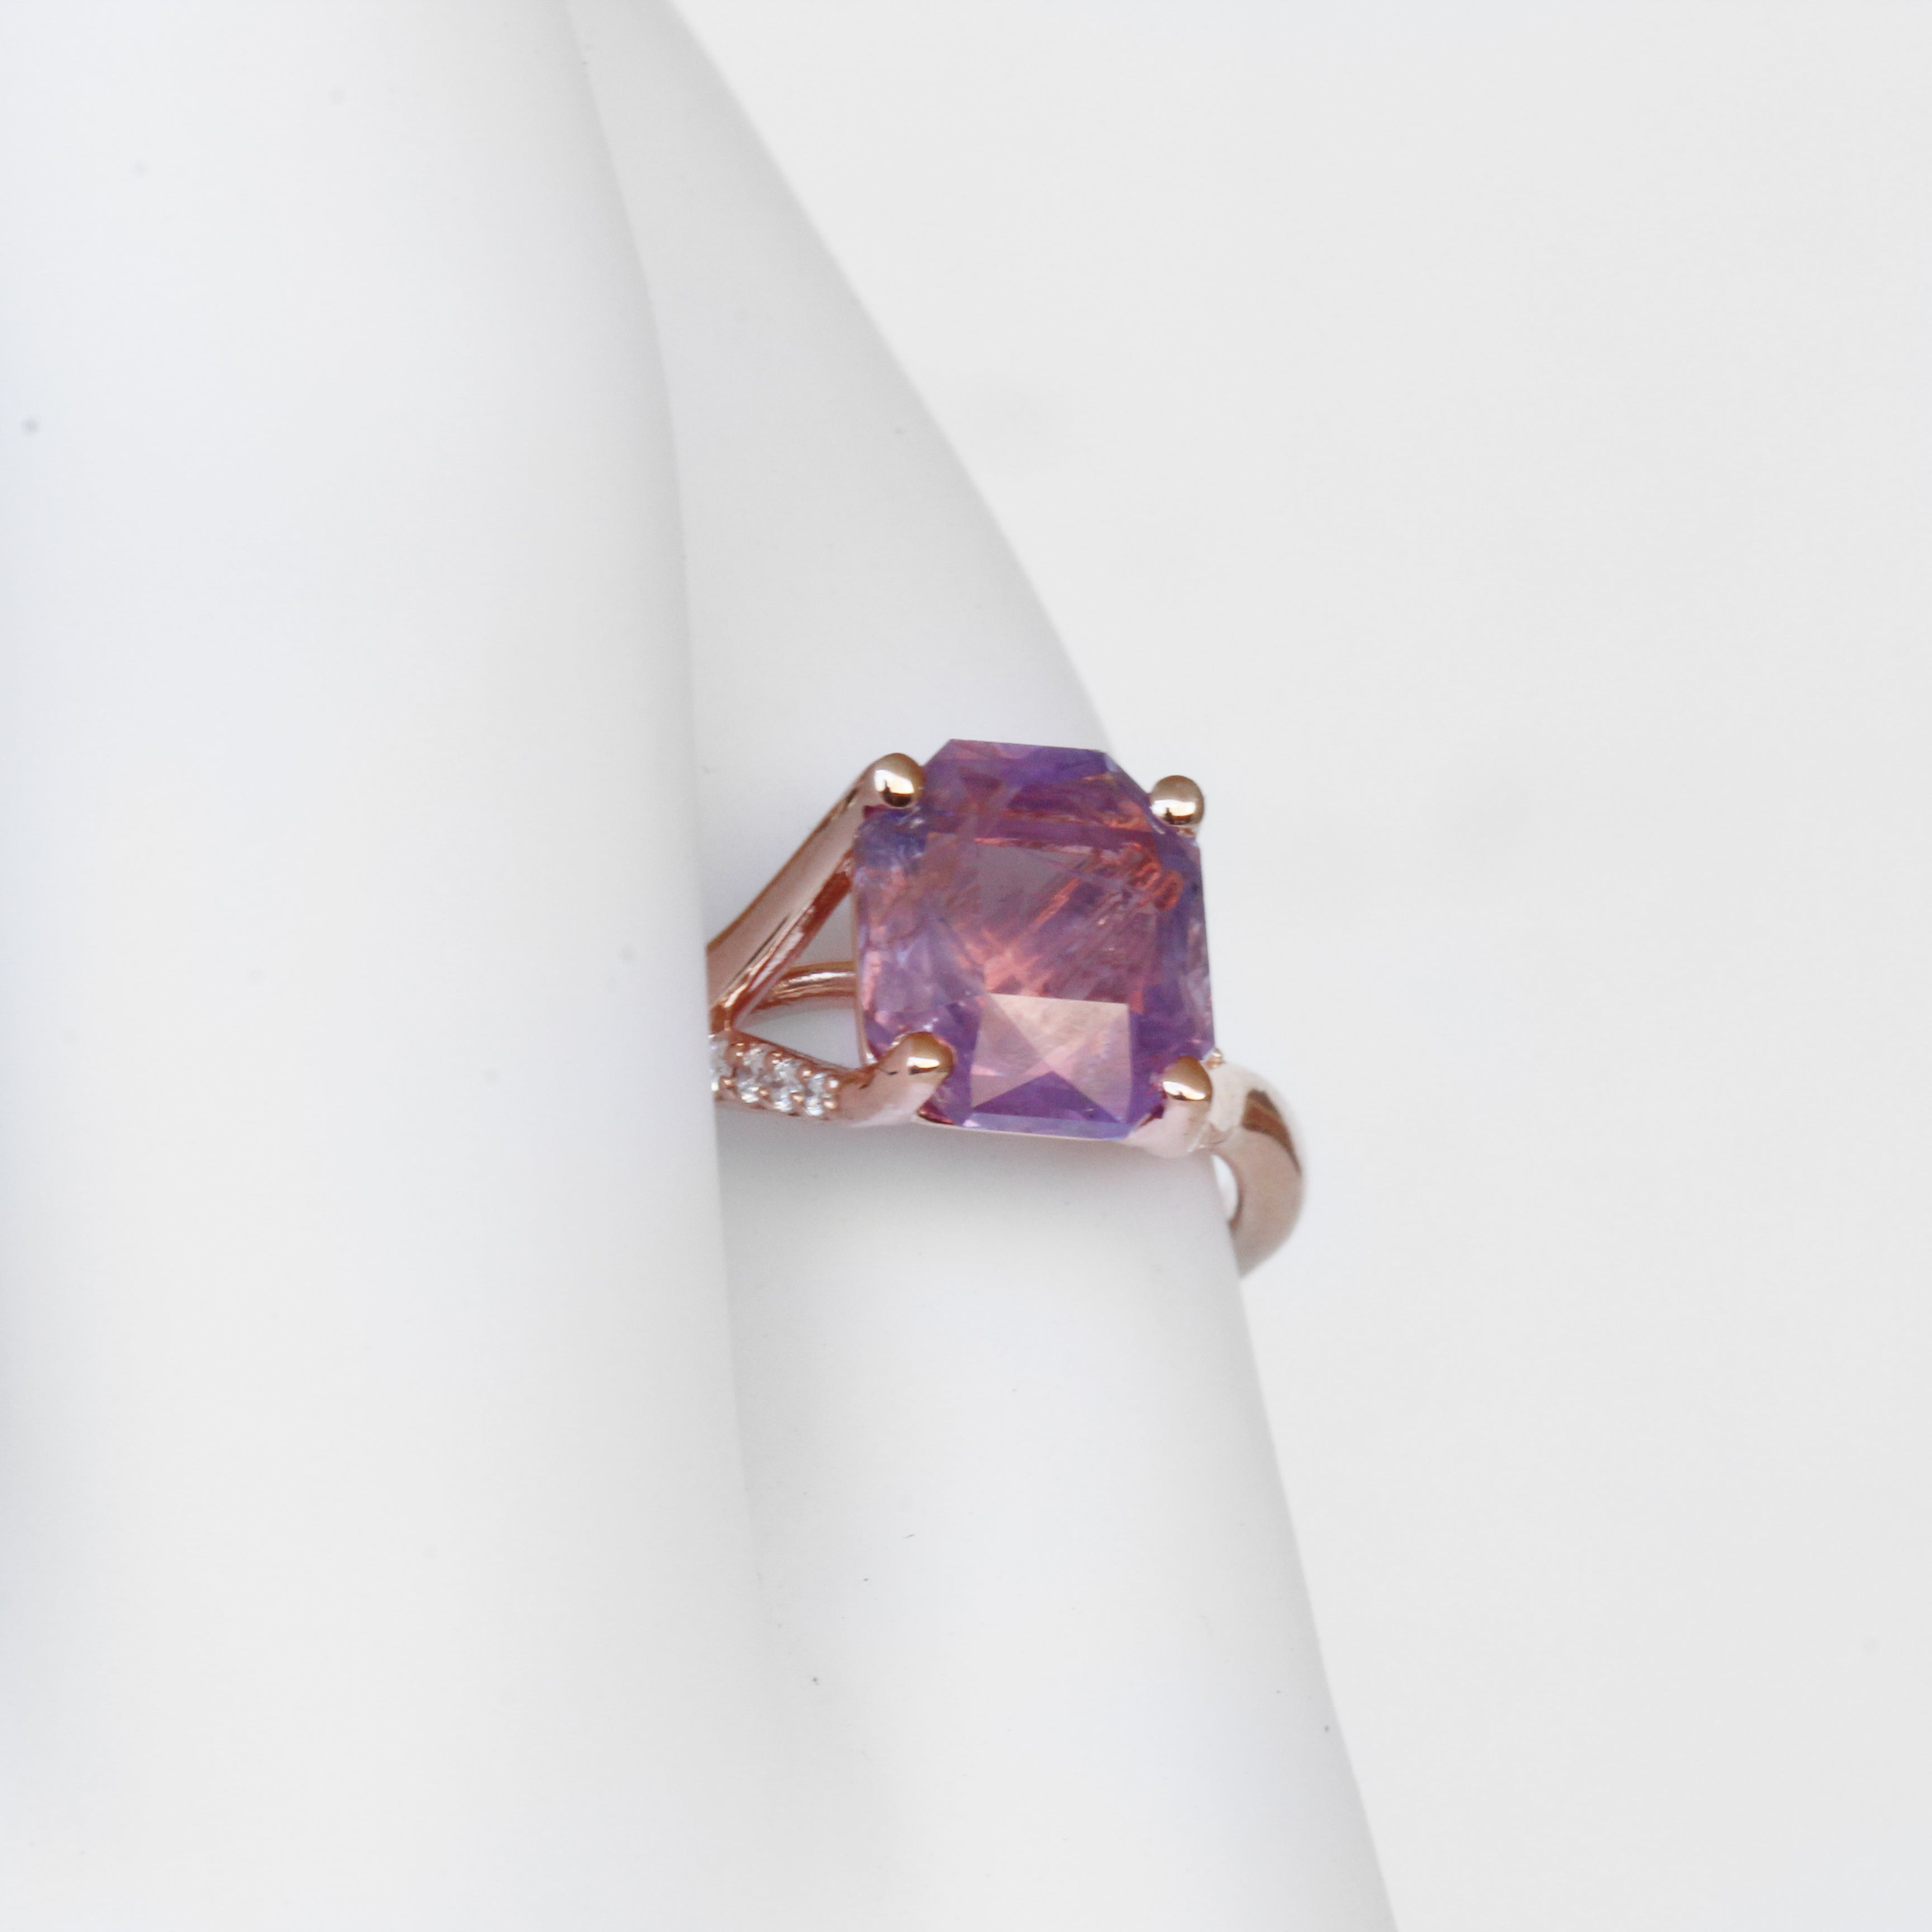 Kennedy ring with 2.7 carat Asscher Sapphire in 10k Rose Gold - Ready to Size and Ship - Midwinter Co. Alternative Bridal Rings and Modern Fine Jewelry